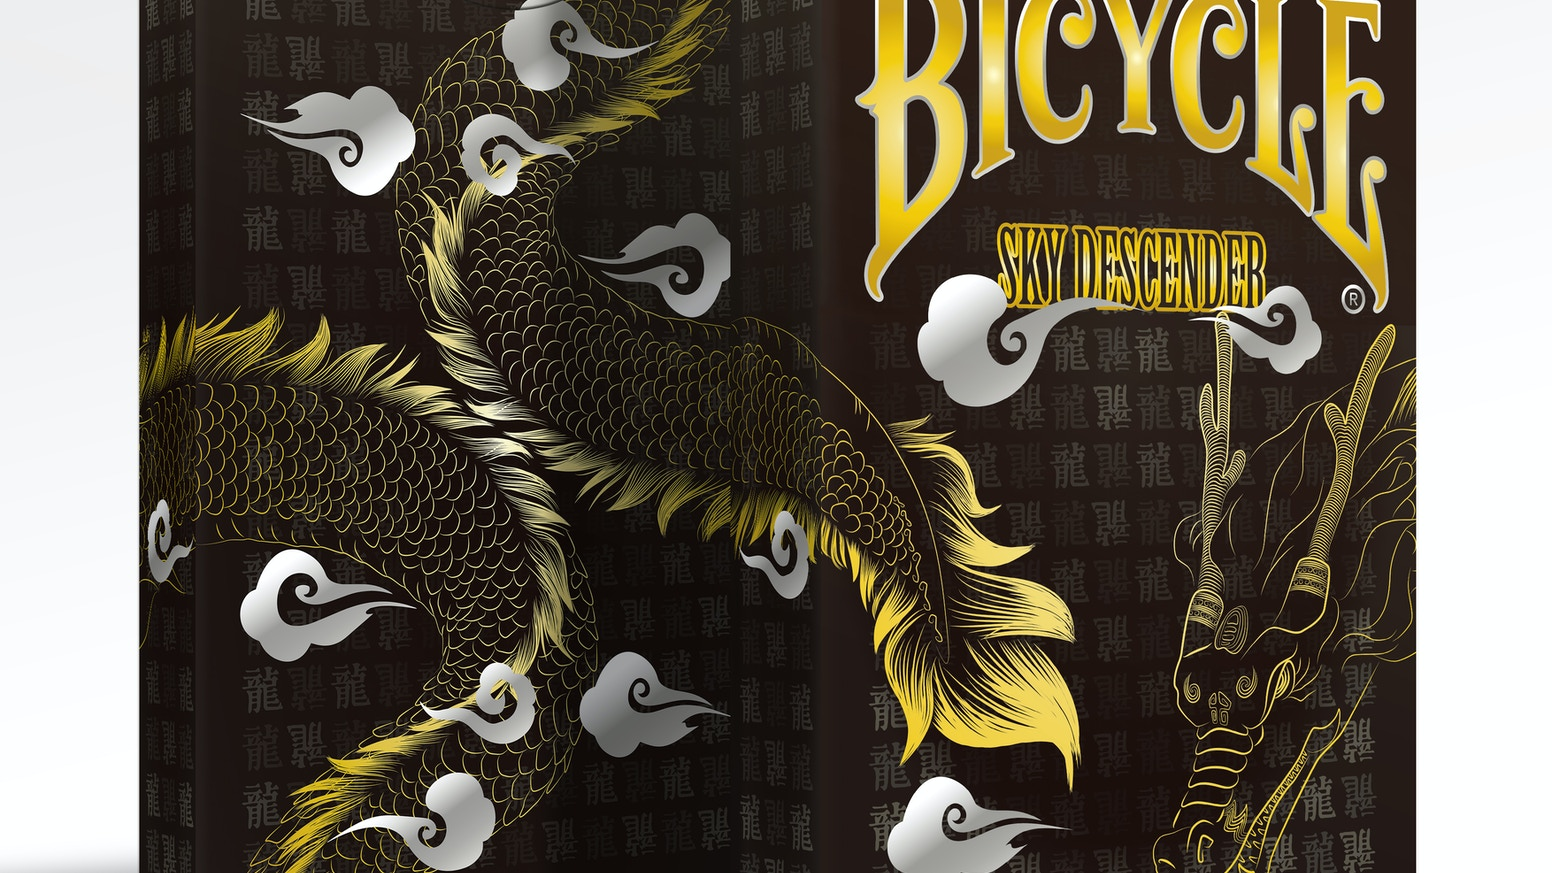 A deck that is full of details and stories. A true Chinese style Bicycle deck  manufactured by USPCC.